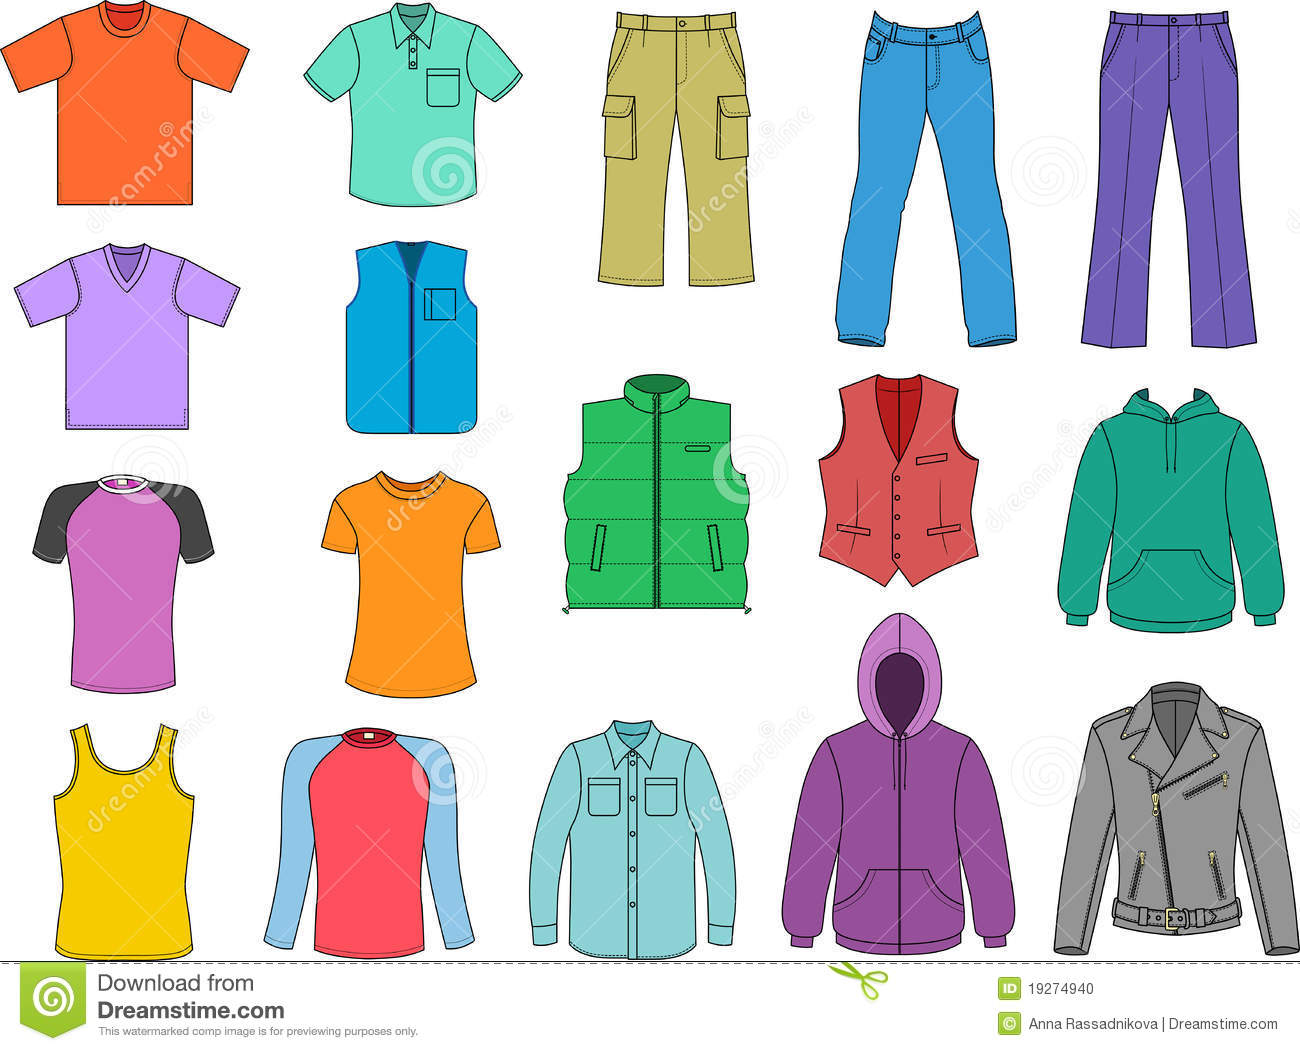 Clipart clothes kids.